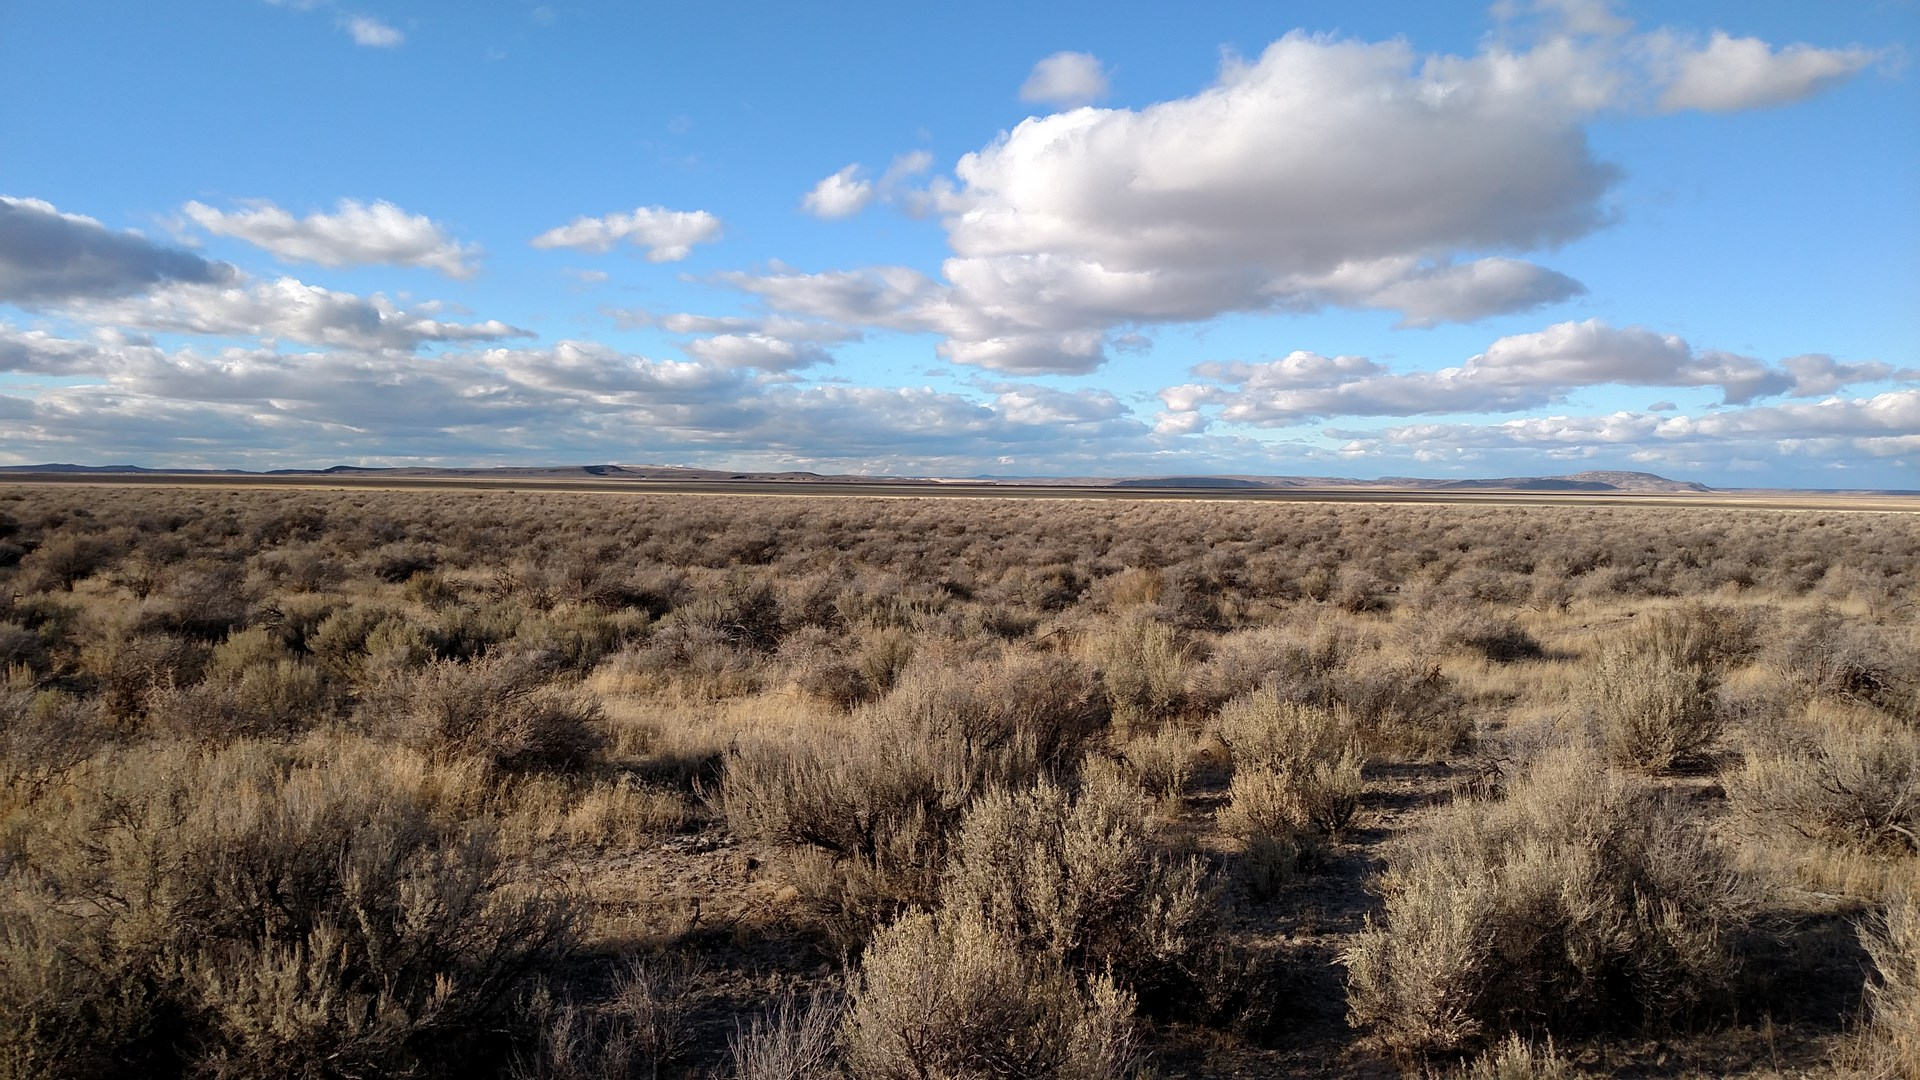 80 ACRES - RECREATIONAL PROPERTY SOUTH OF BURNS OR